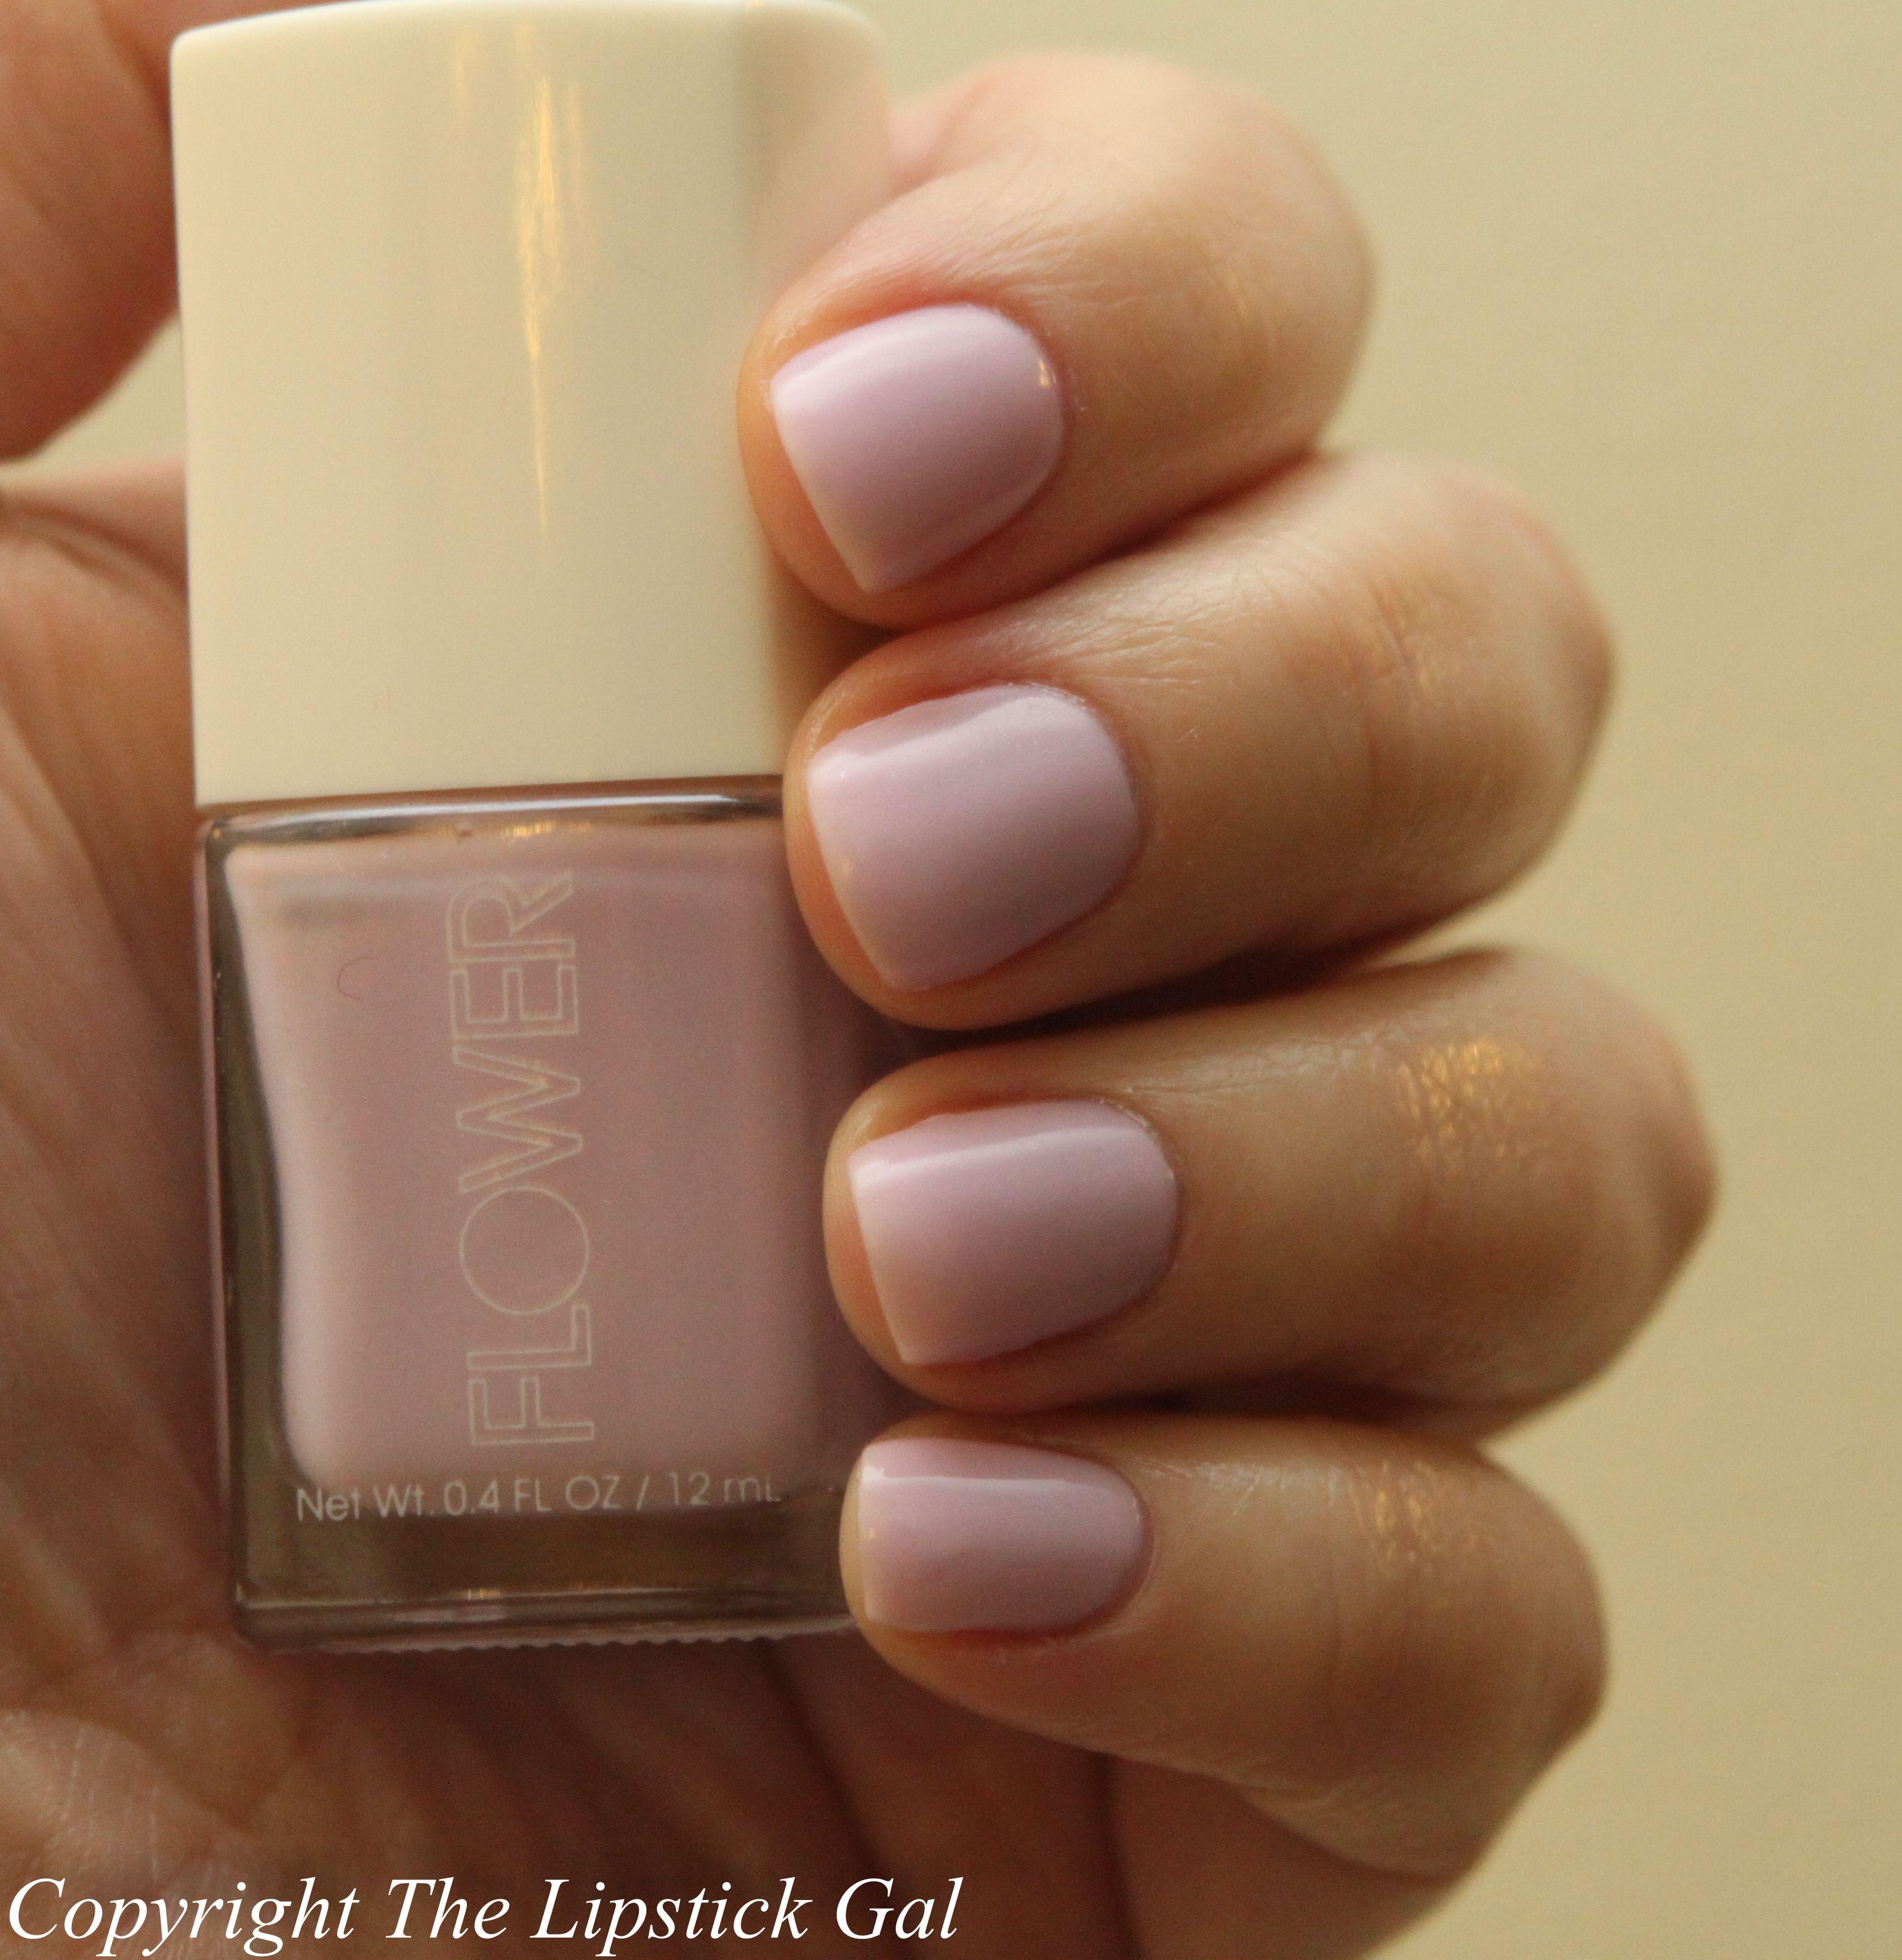 Flower beauty polish i lavendare you by the lipstick gal flower beauty polish i lavendare you by the lipstick gal izmirmasajfo